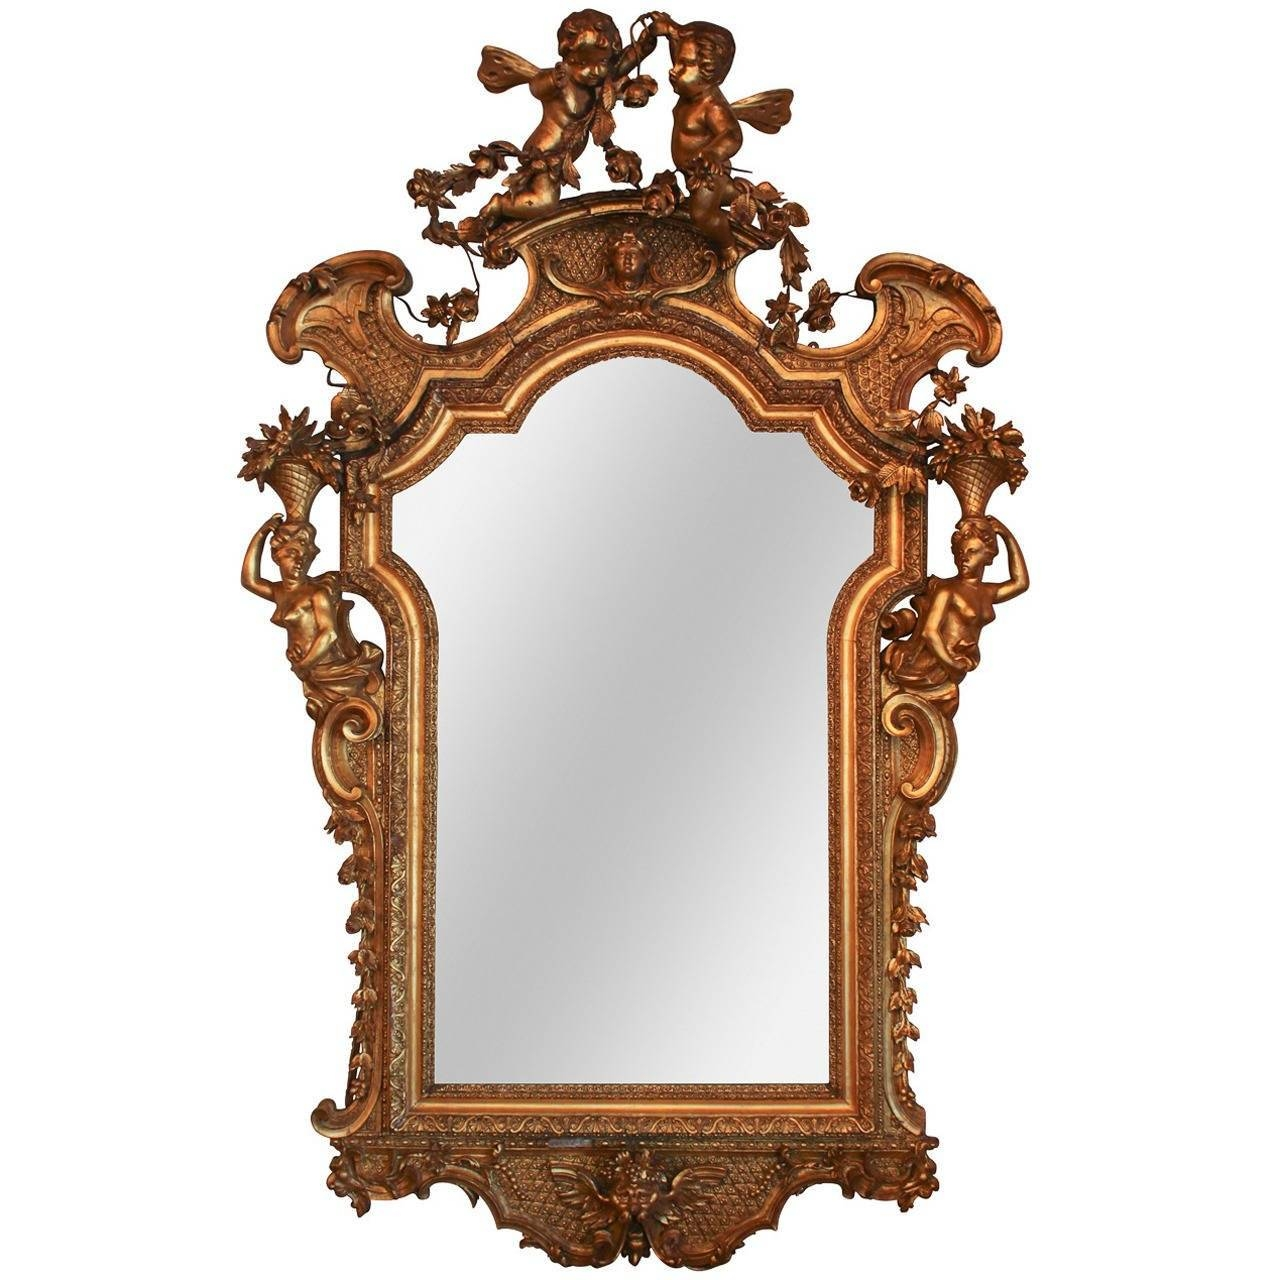 Rare 19Th C. French Rococo Giltwood Cherub Mirror For Sale At 1Stdibs inside Gold Rococo Mirrors (Image 23 of 25)